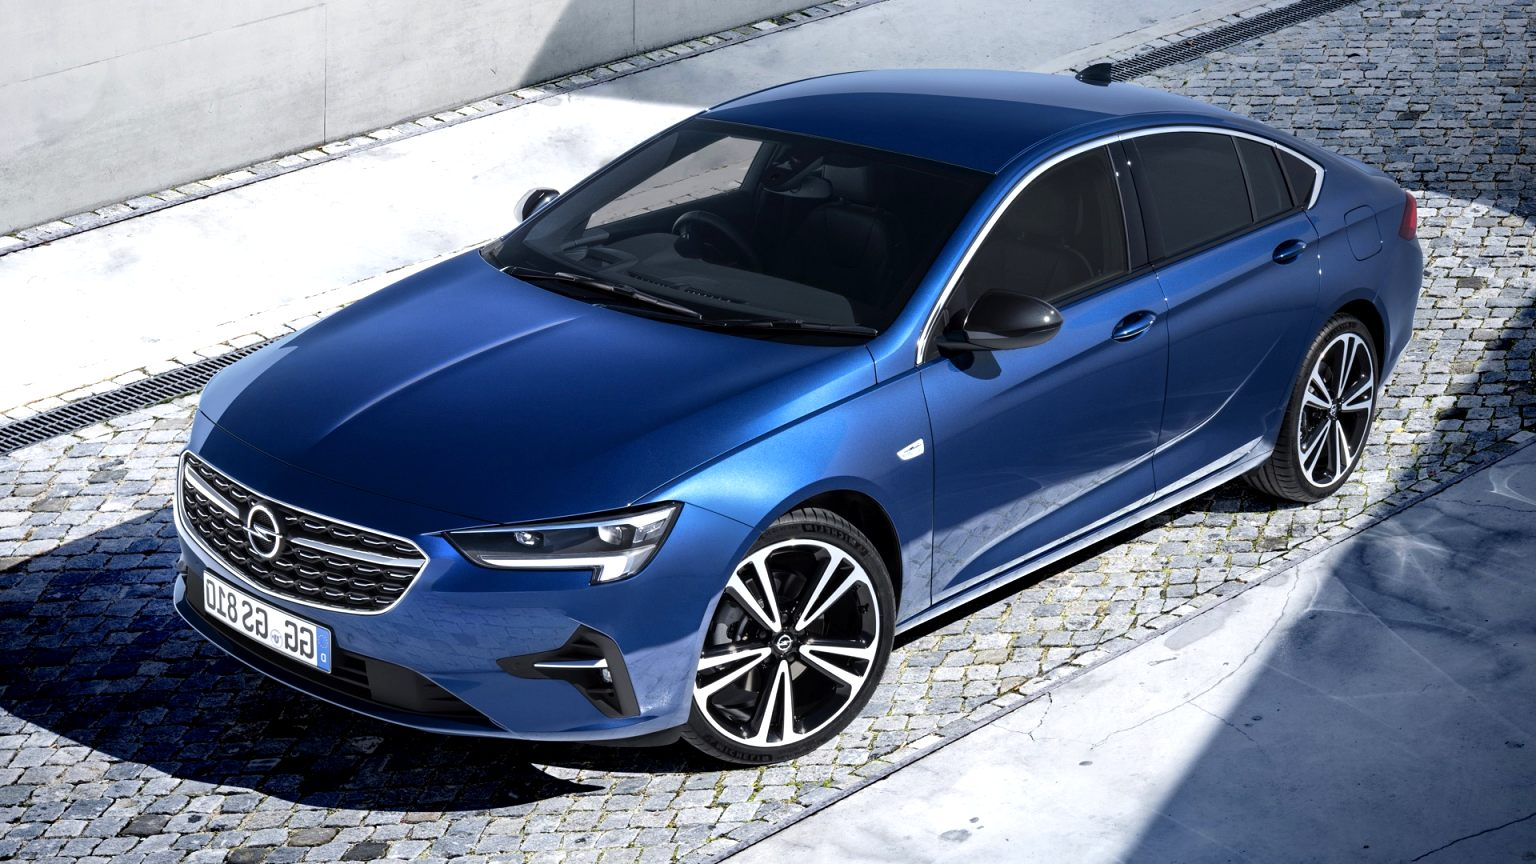 2020 opel insignia for sale Concept and Review